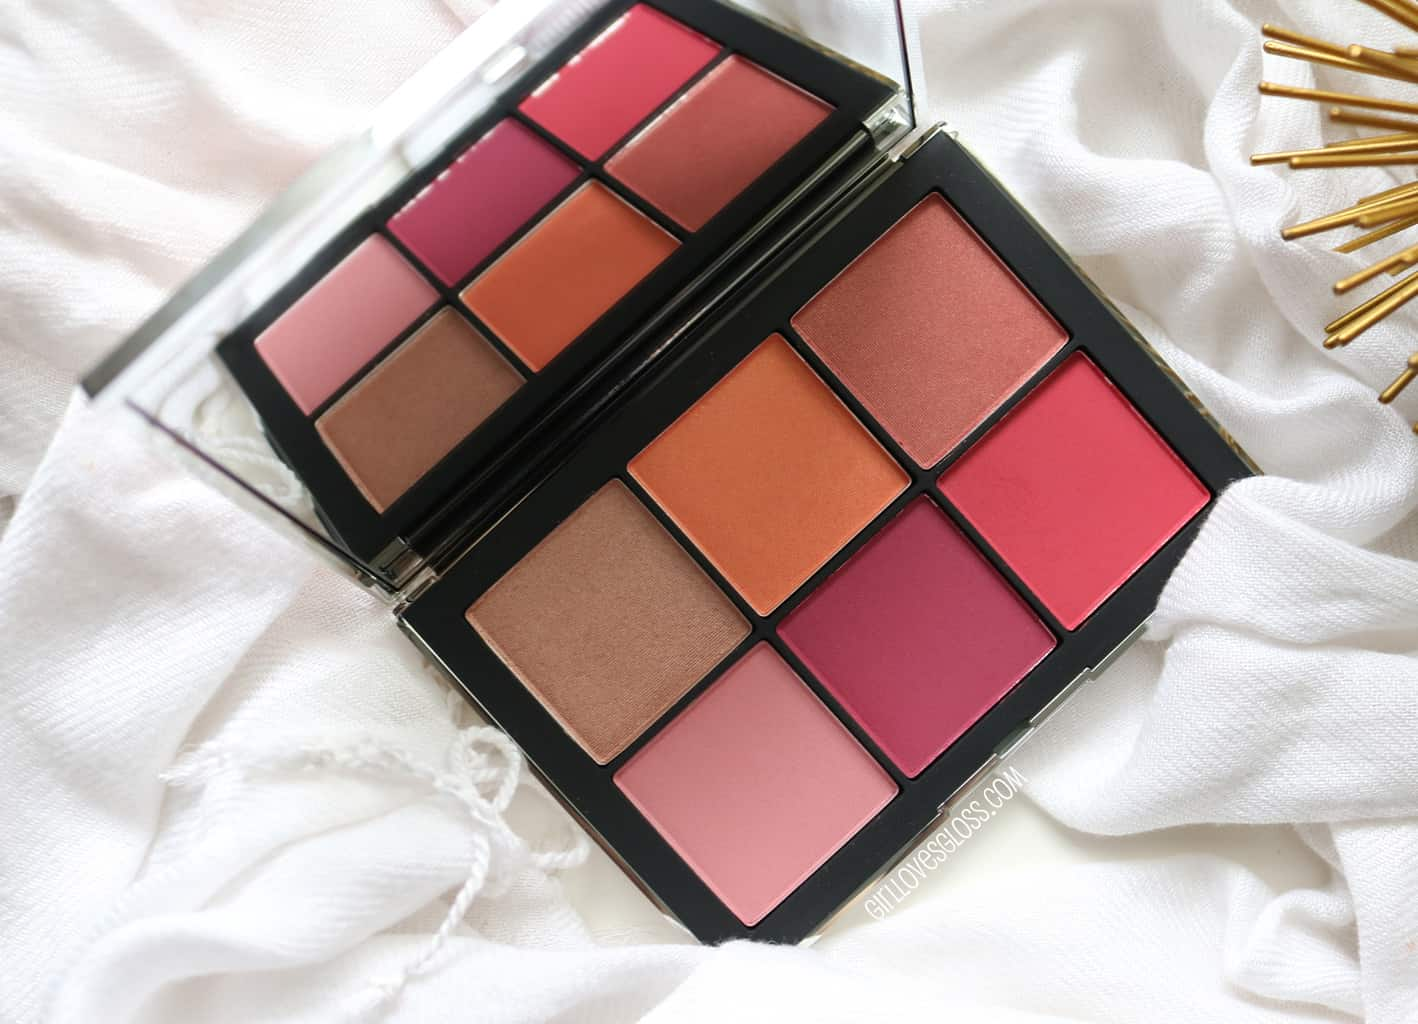 NARS Wanted Blush Palette 1 and 2 review